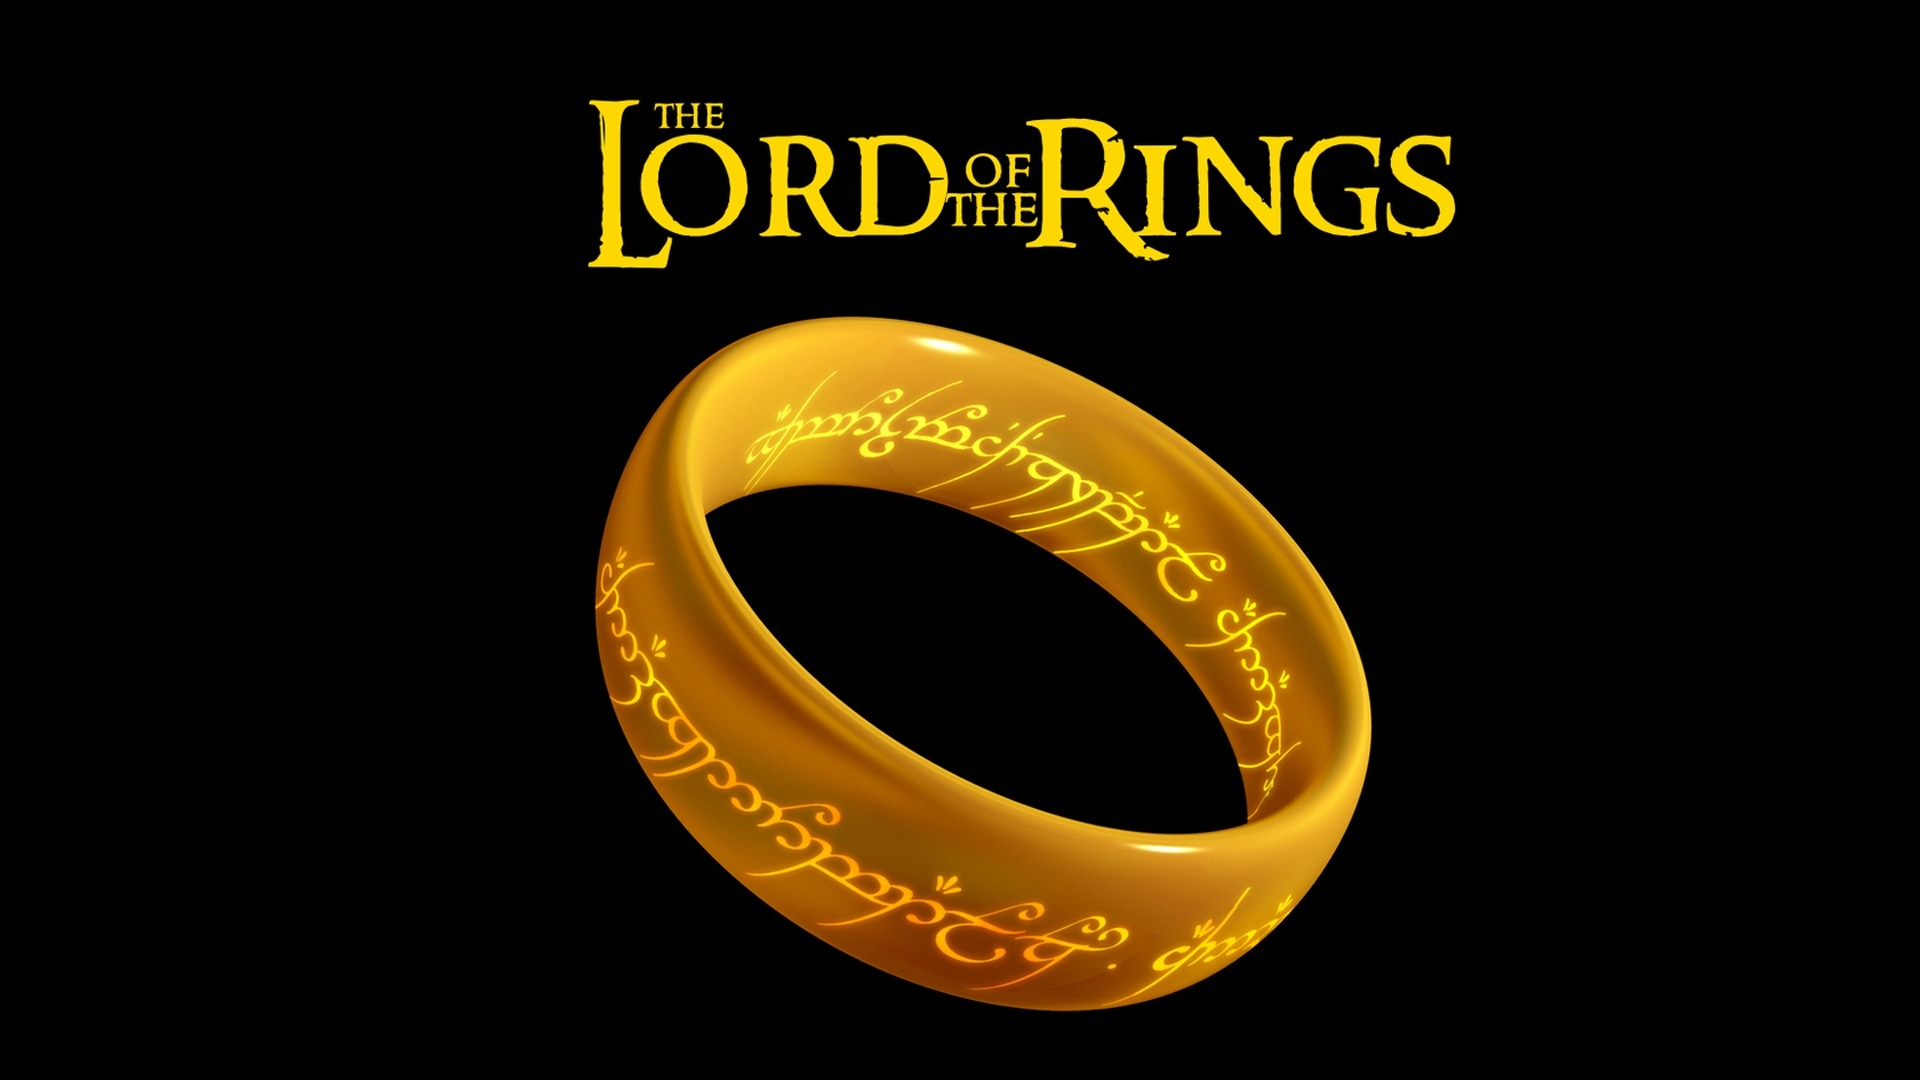 an analysis of the movie the lord of the ringsthe fellowship of the ring The lord of the rings: the fellowship of the ring (2001) on imdb: plot summary, synopsis, and more.